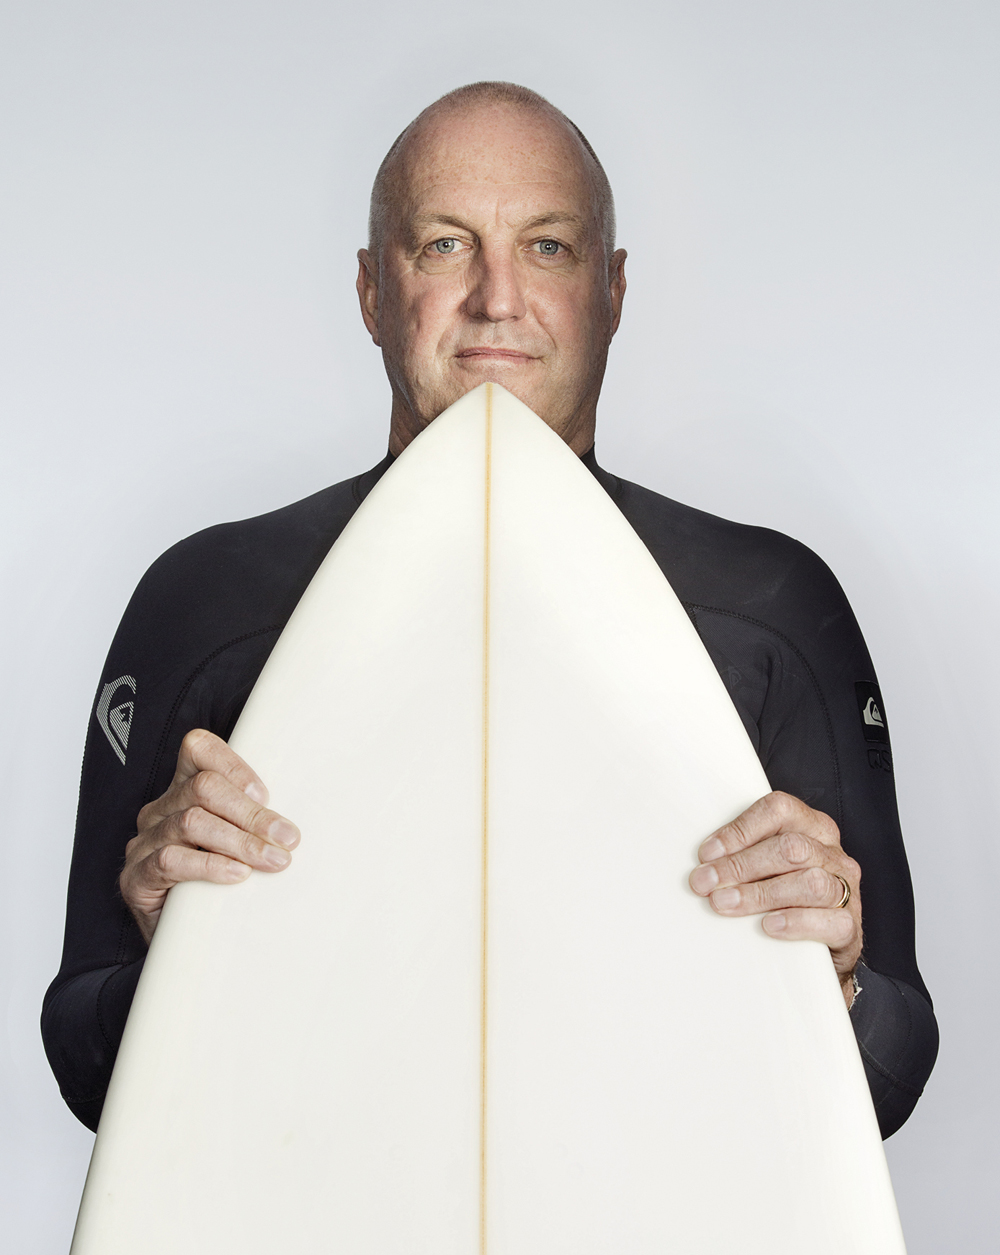 Portrait of Mark Lane with a surfboard